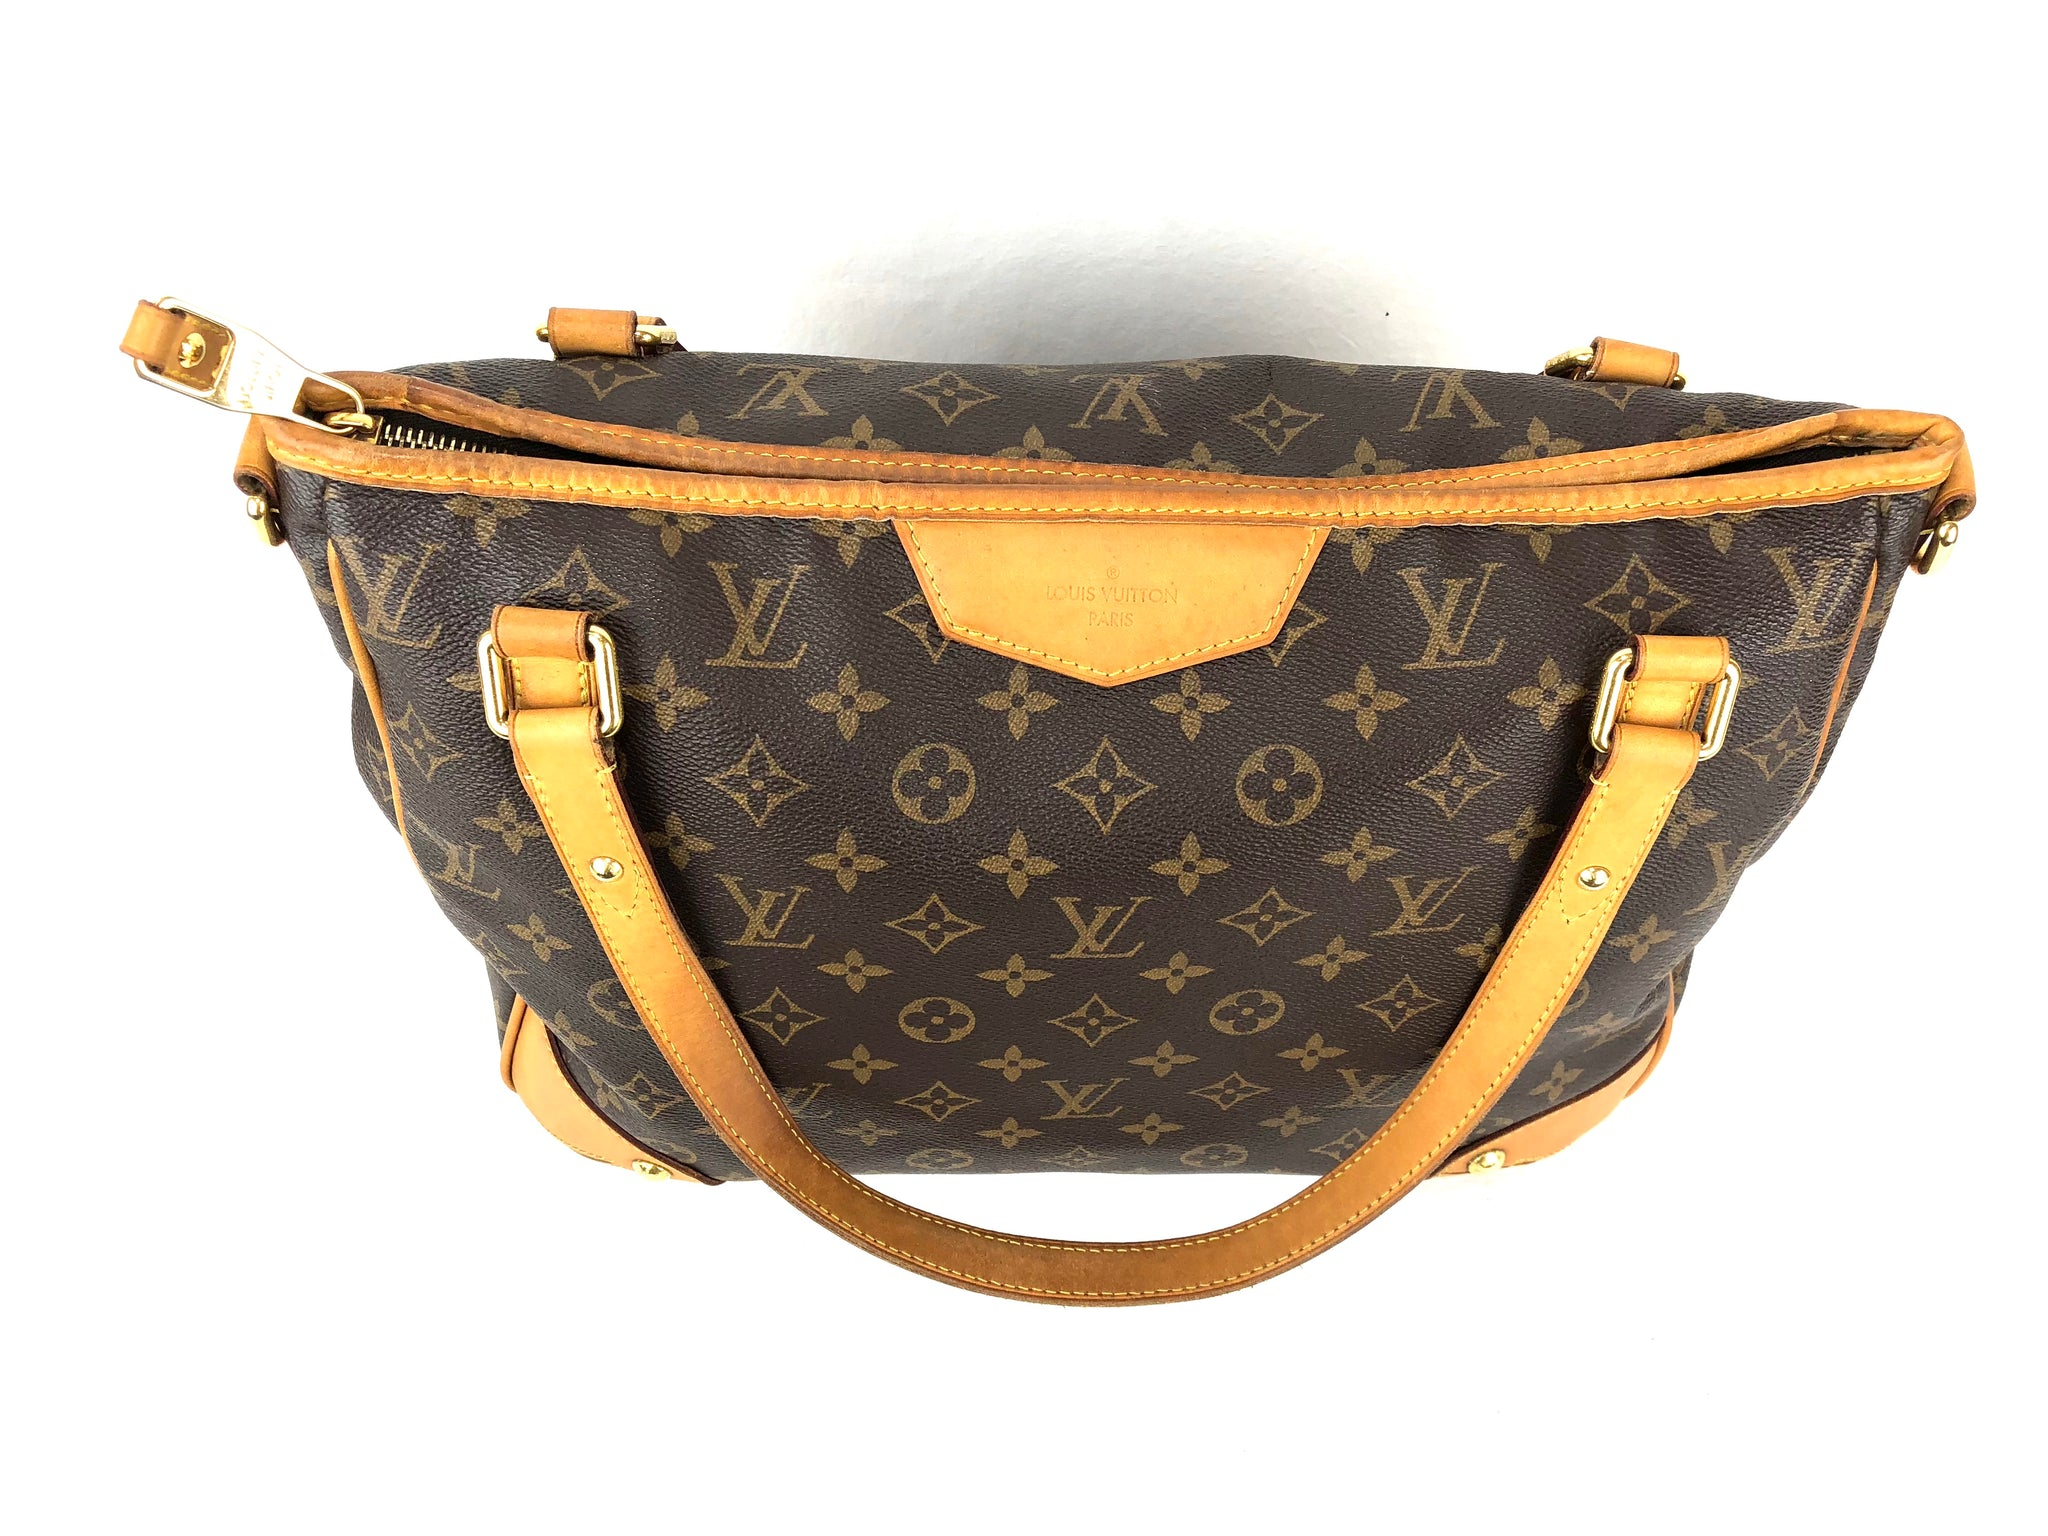 LOUIS VUITTON Estrela MM Satchel Shoulder Bag